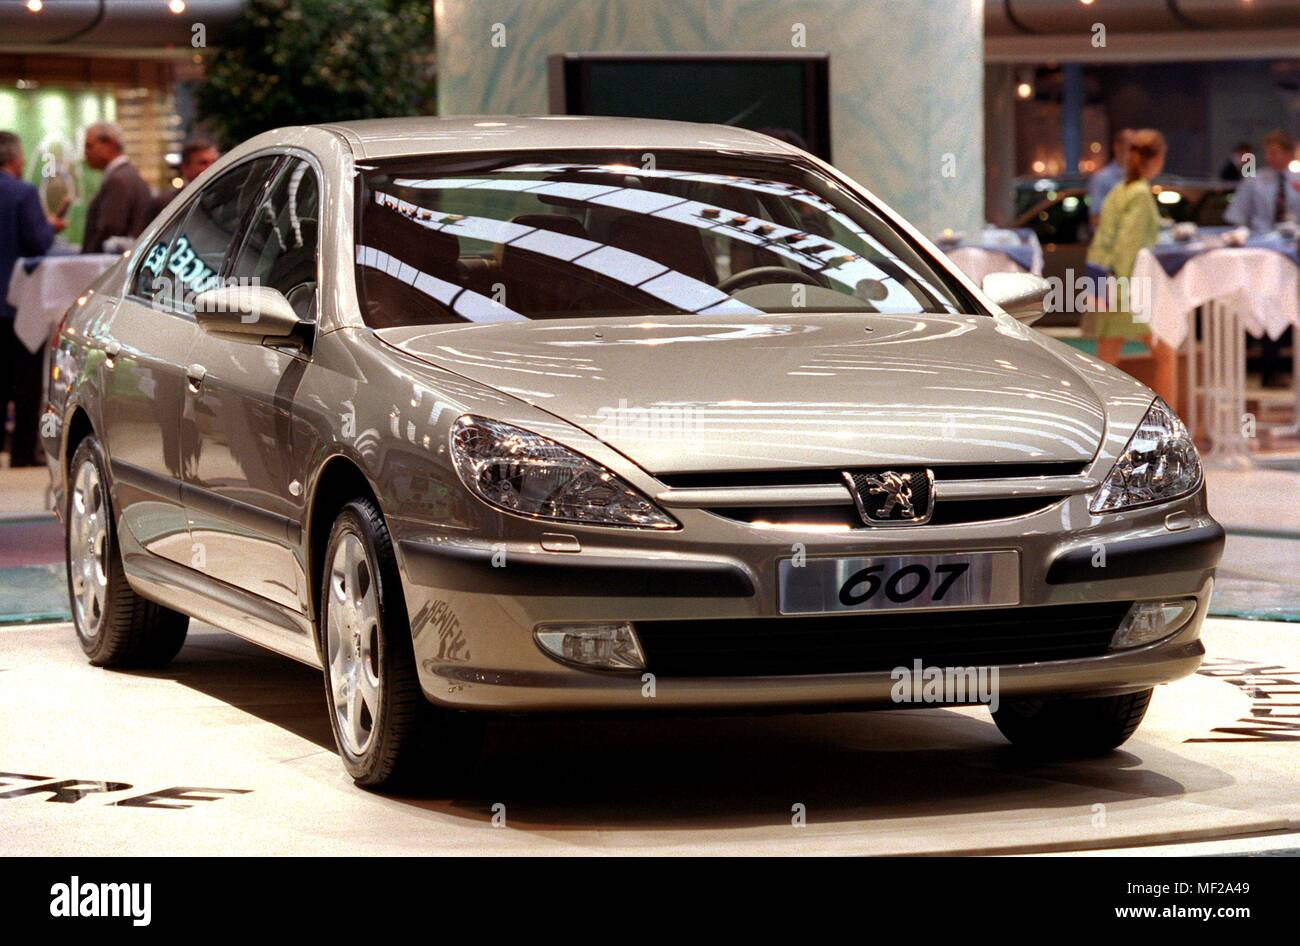 Peugeot presented the new top model 607 at the International Motor Show (IAA) in Frankfurt on 15.9.1999. In the German market, however, the big Peugeot will be available only from autumn 2000. When the time comes, Peugeot wants to offer the 4.87-meter sedan with two engines. So there is on the one hand a V6 engine with three liters of displacement and 152 kW/207 hp. Second unit is a four-cylinder diesel with 2.2 liters of displacement and 98 kW/133 hp. Both versions will be available with both manual and automatic transmissions. | usage worldwide - Stock Image